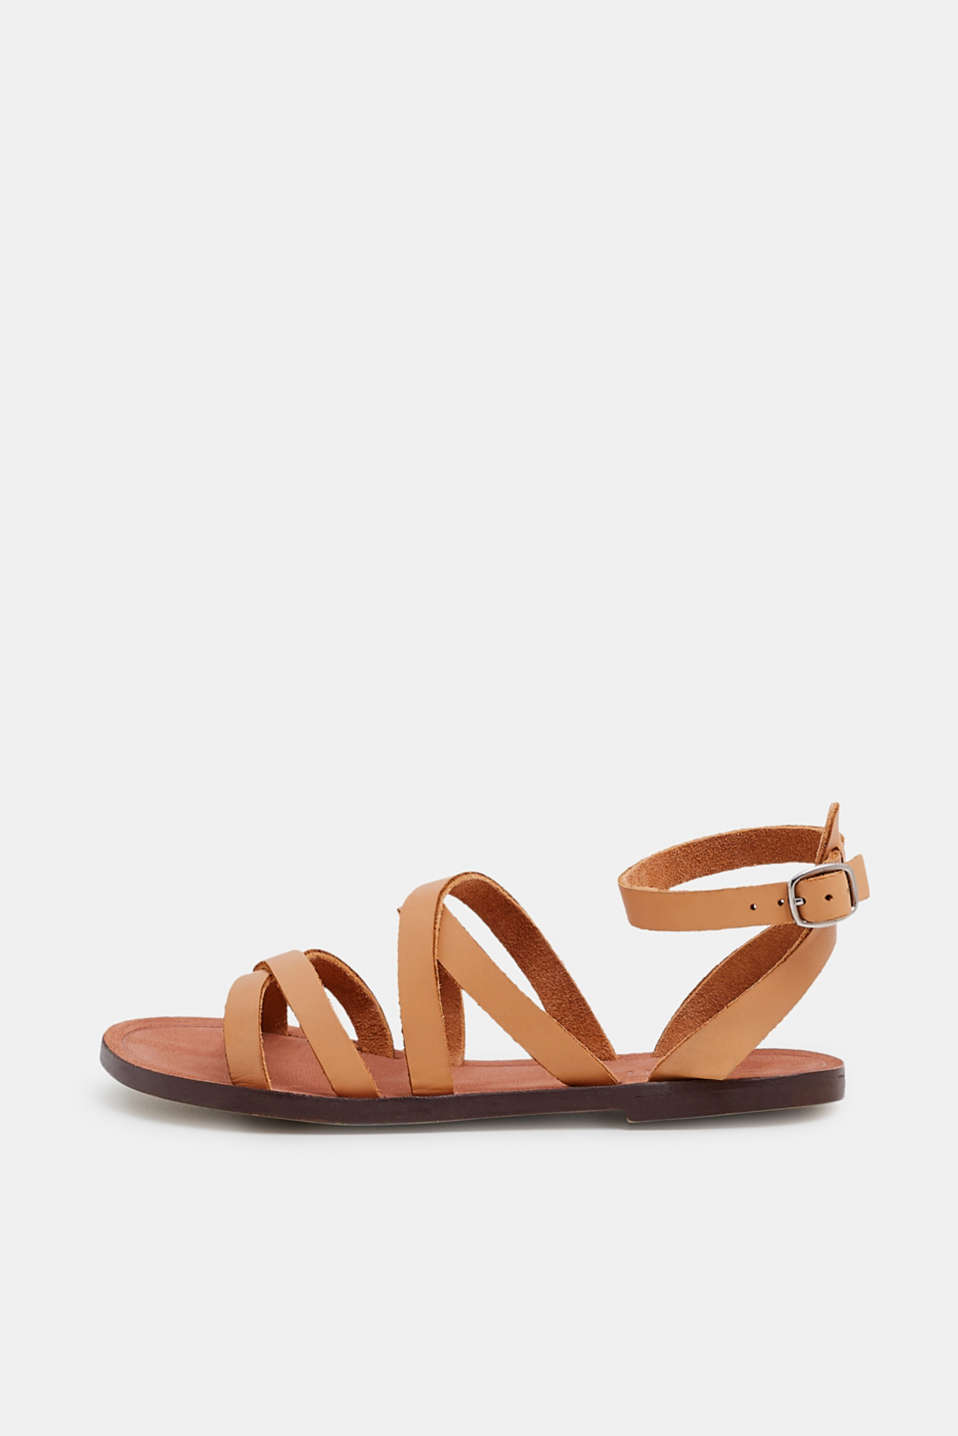 Esprit - Leather sandals